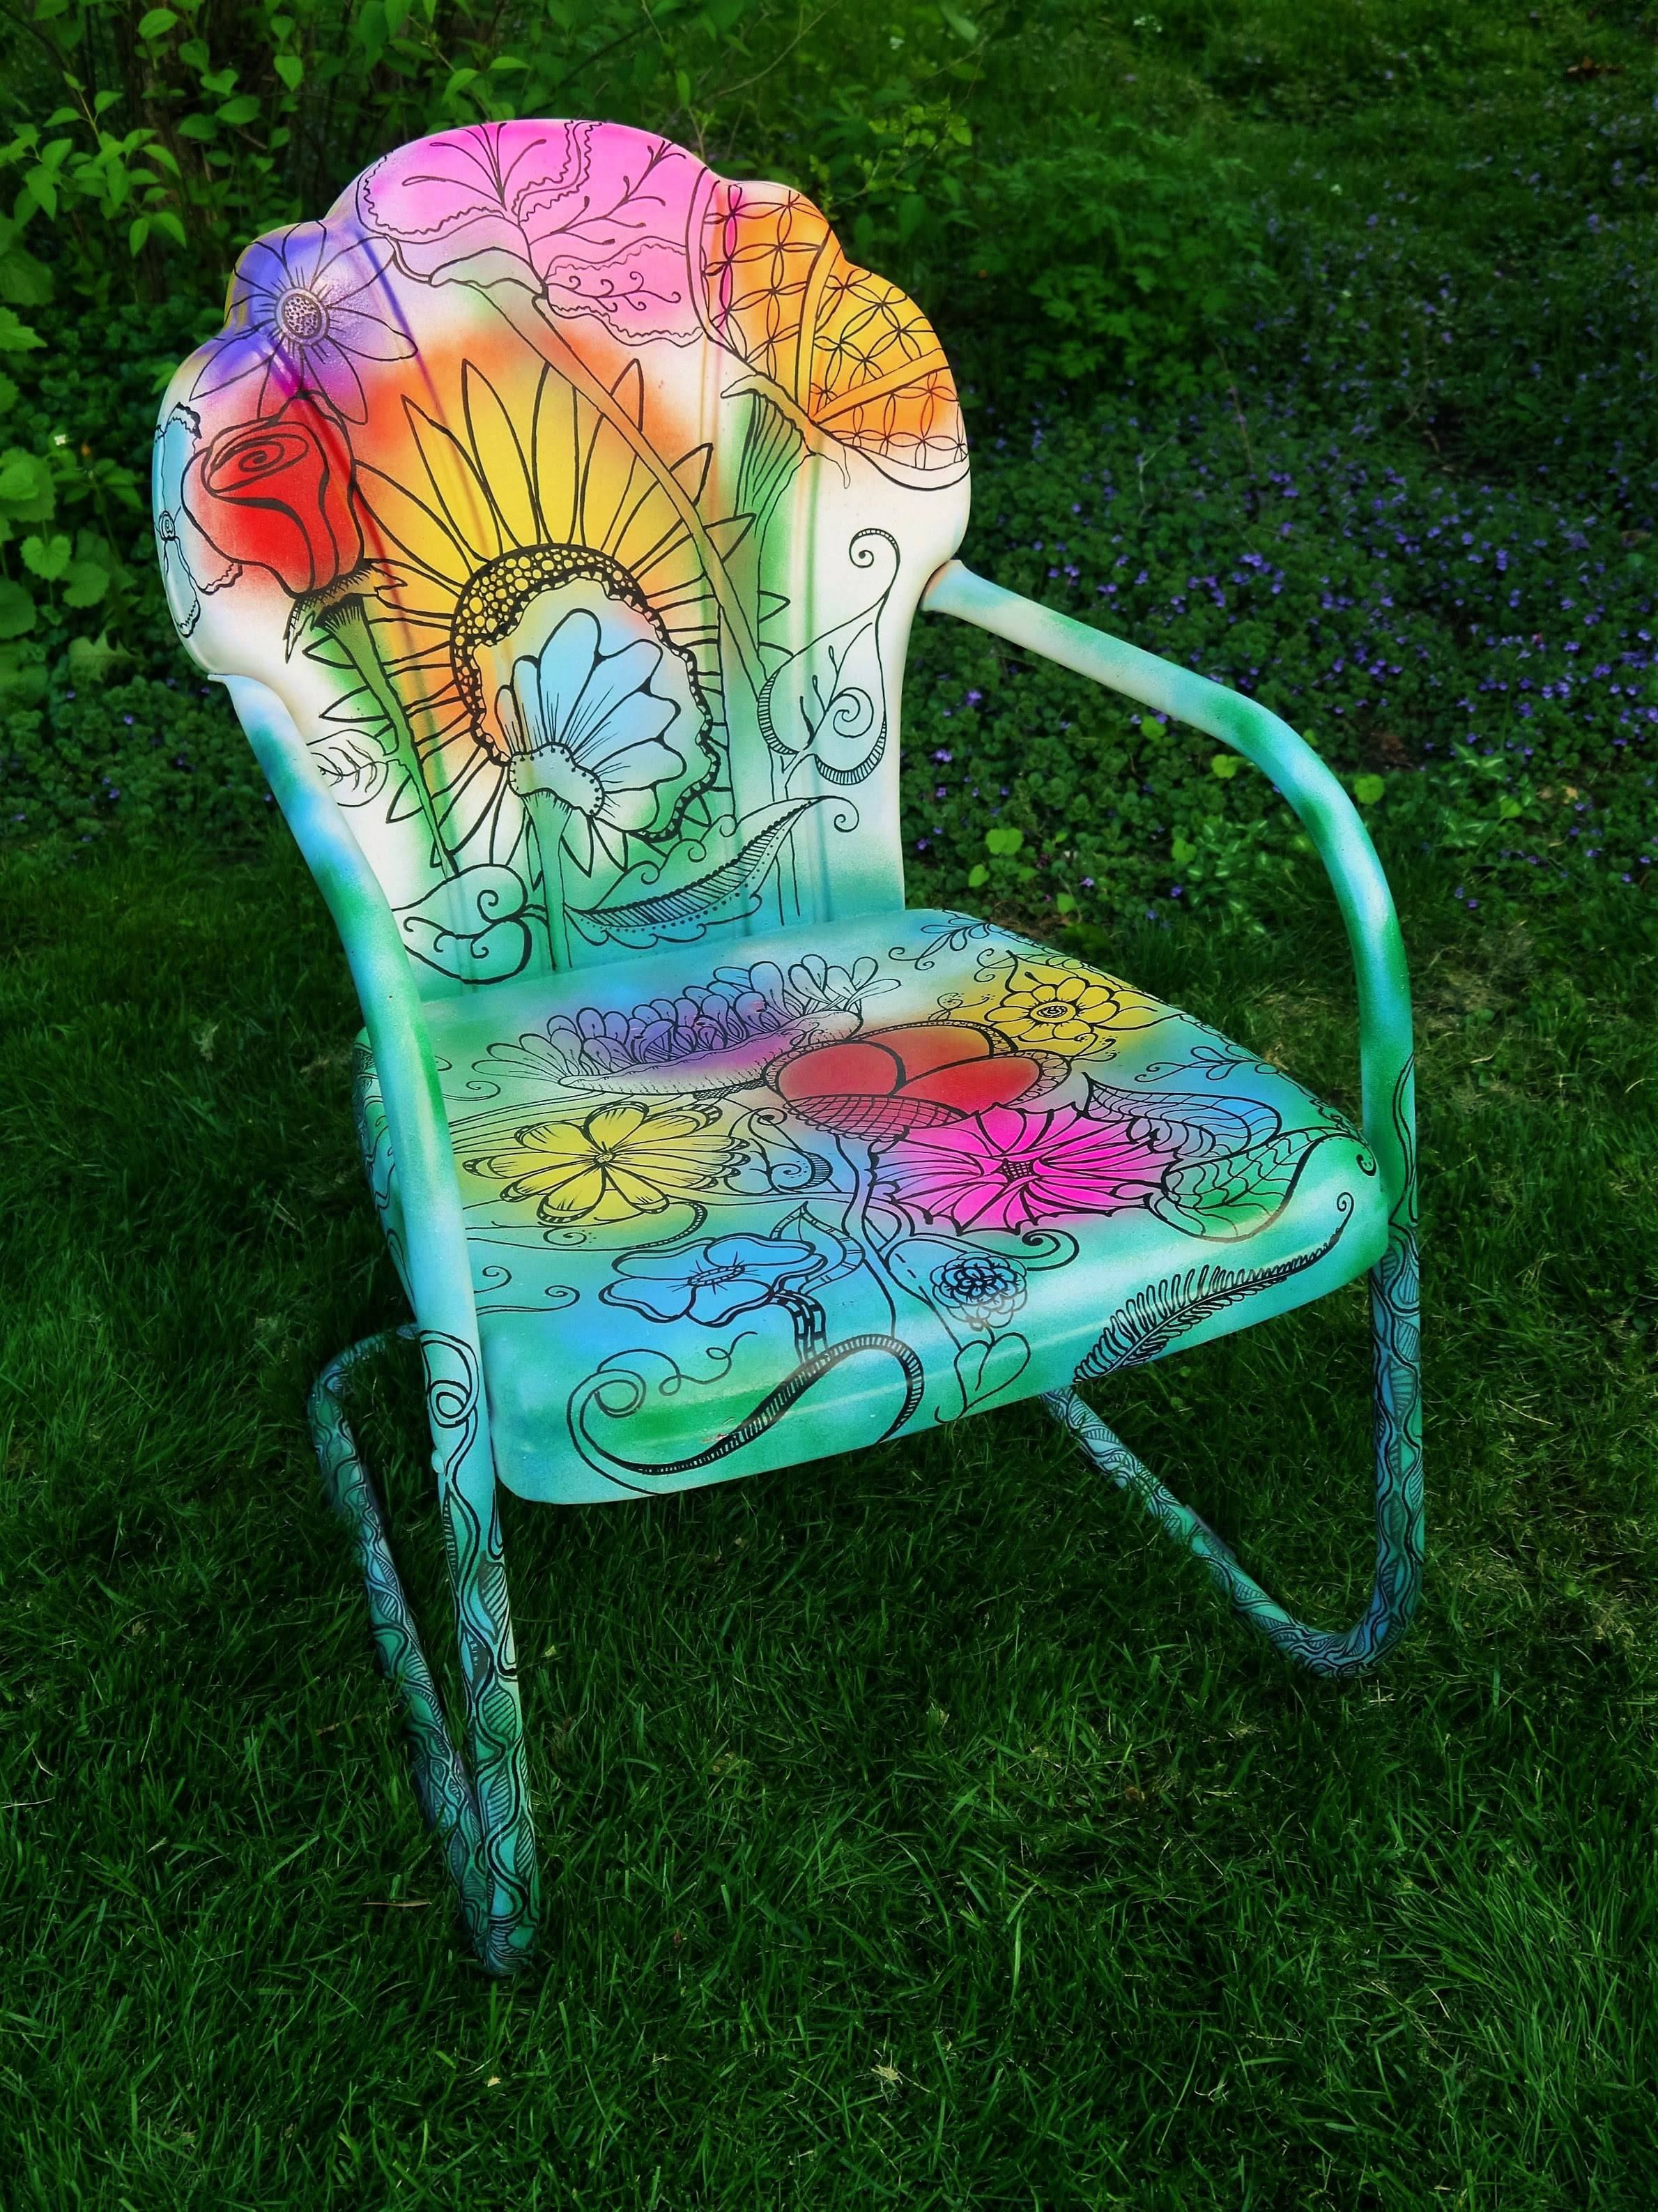 This is one of 20 artist-decorated chairs that can be seen in downtown Naperville. The chairs will be auctioned at a fundraiser for Bridge Communities.